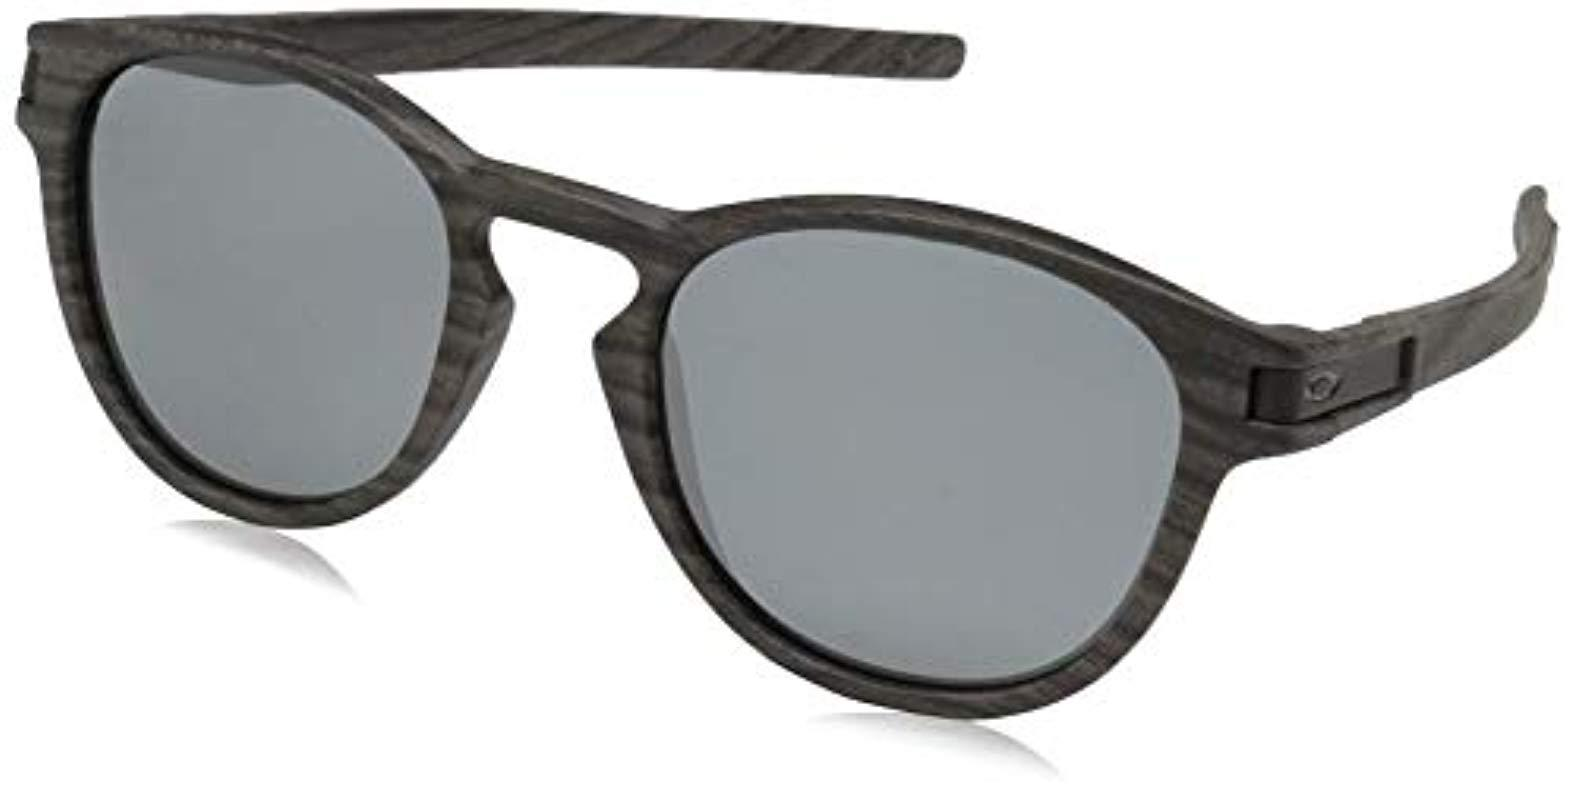 Ray-Ban Latch Sunglasses, Brown (marrón), 52 in Brown for Men - Lyst 317f350ff2f2